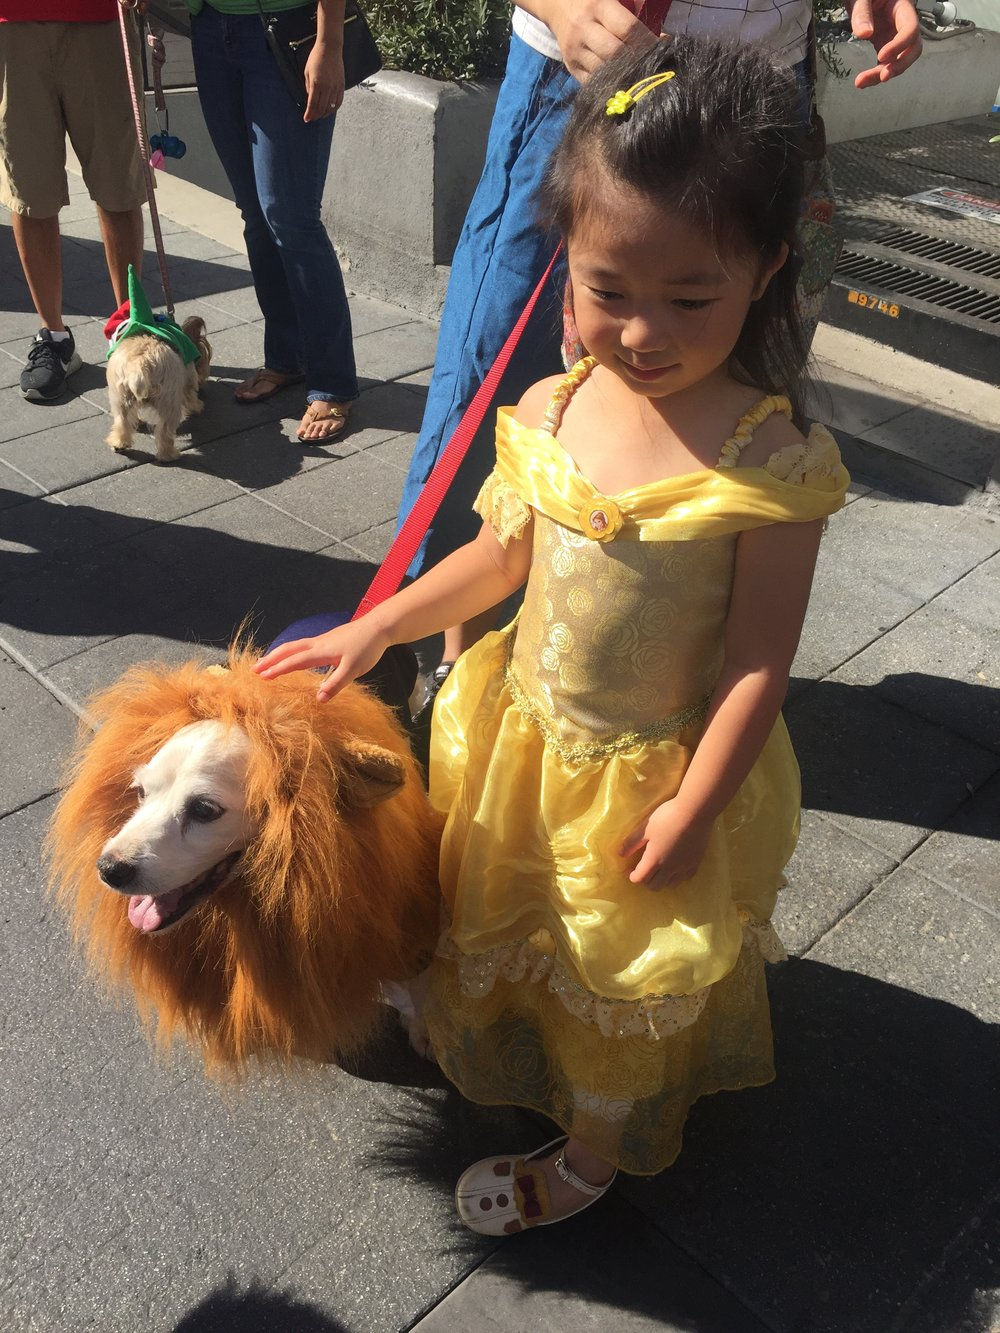 Beauty and the beast dog halloween costume.jpg